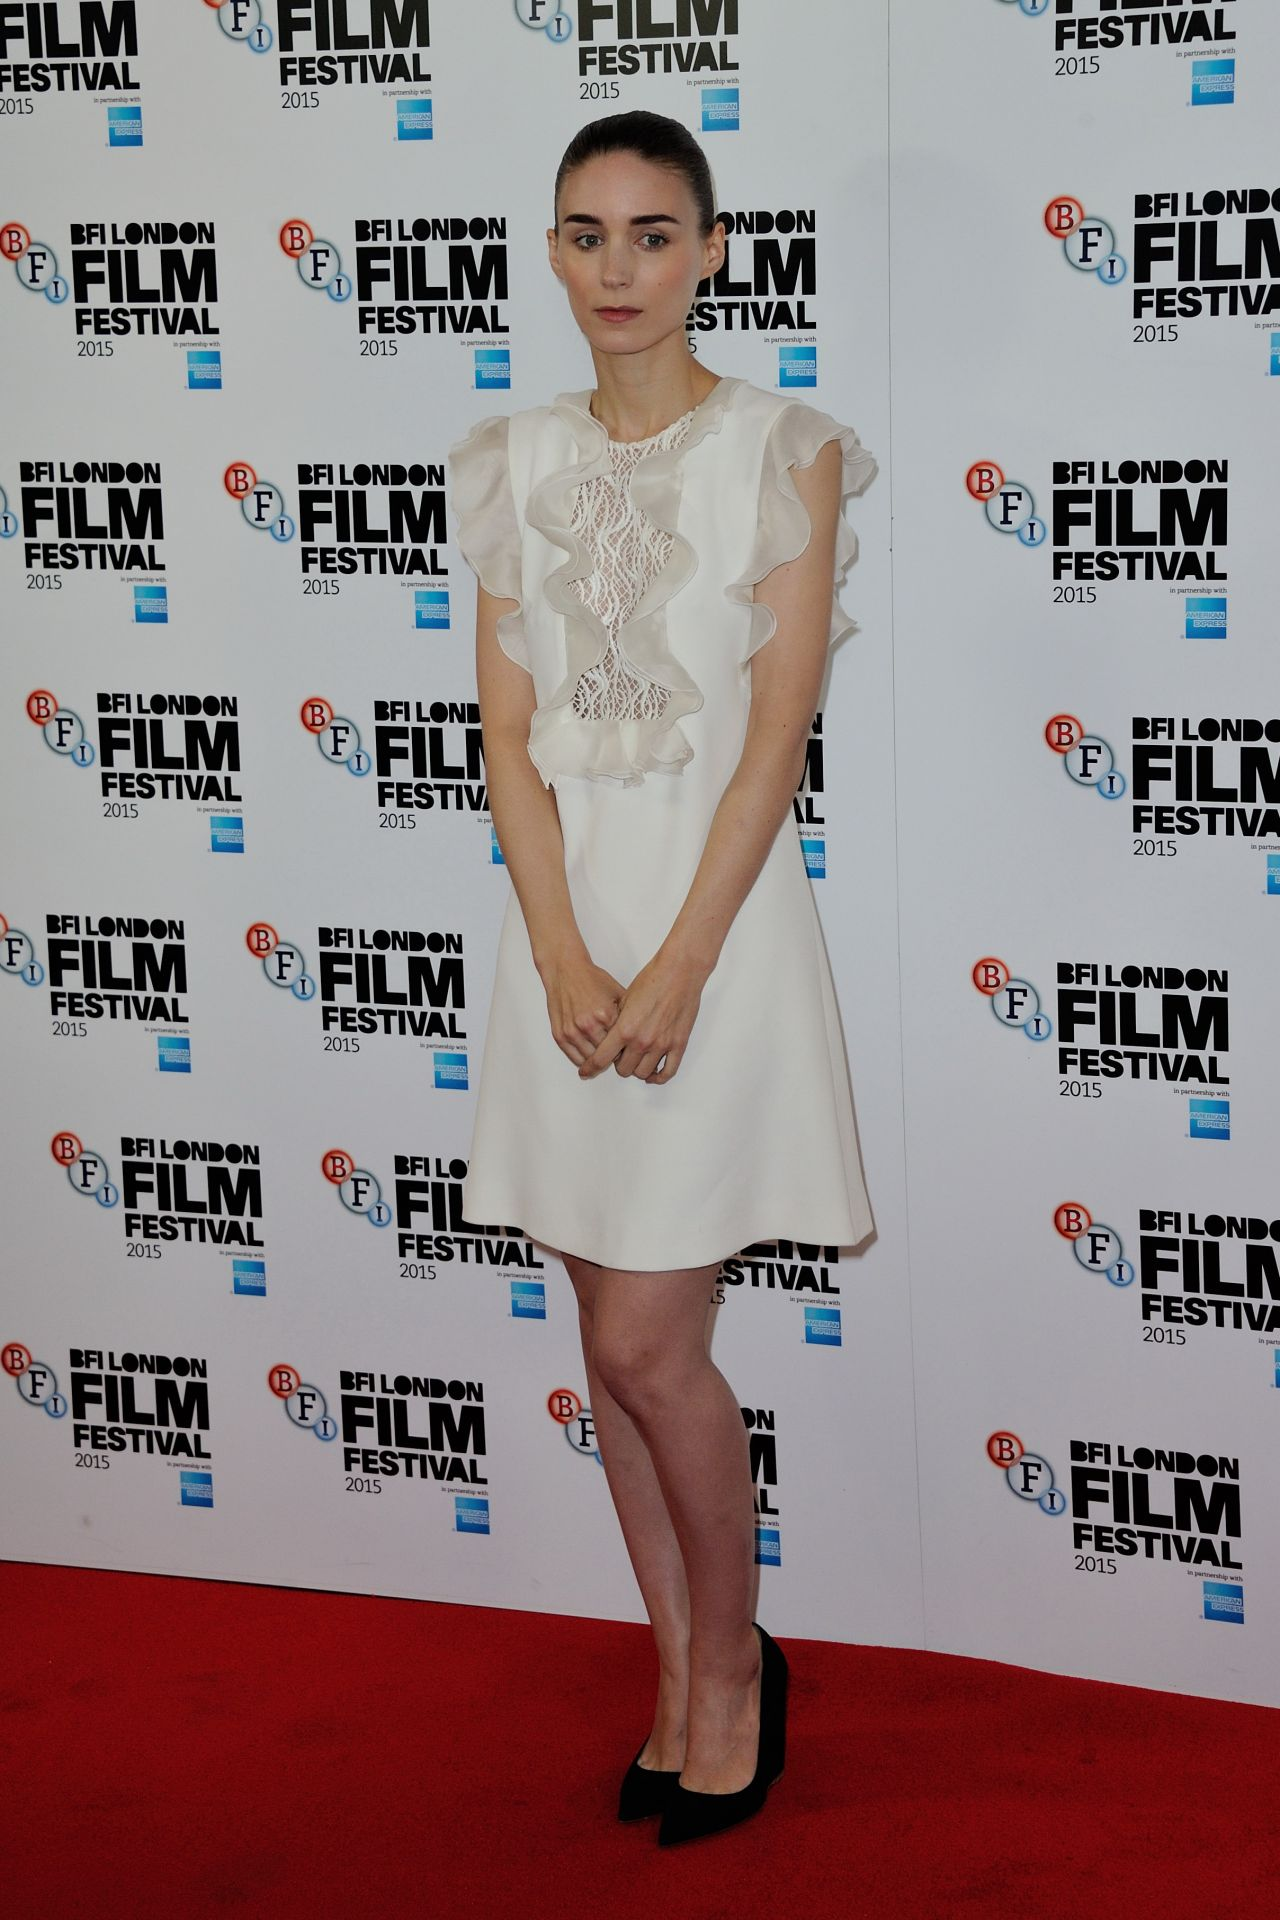 rooney-mara-carol-photocall-bfi-london-film-festival_6